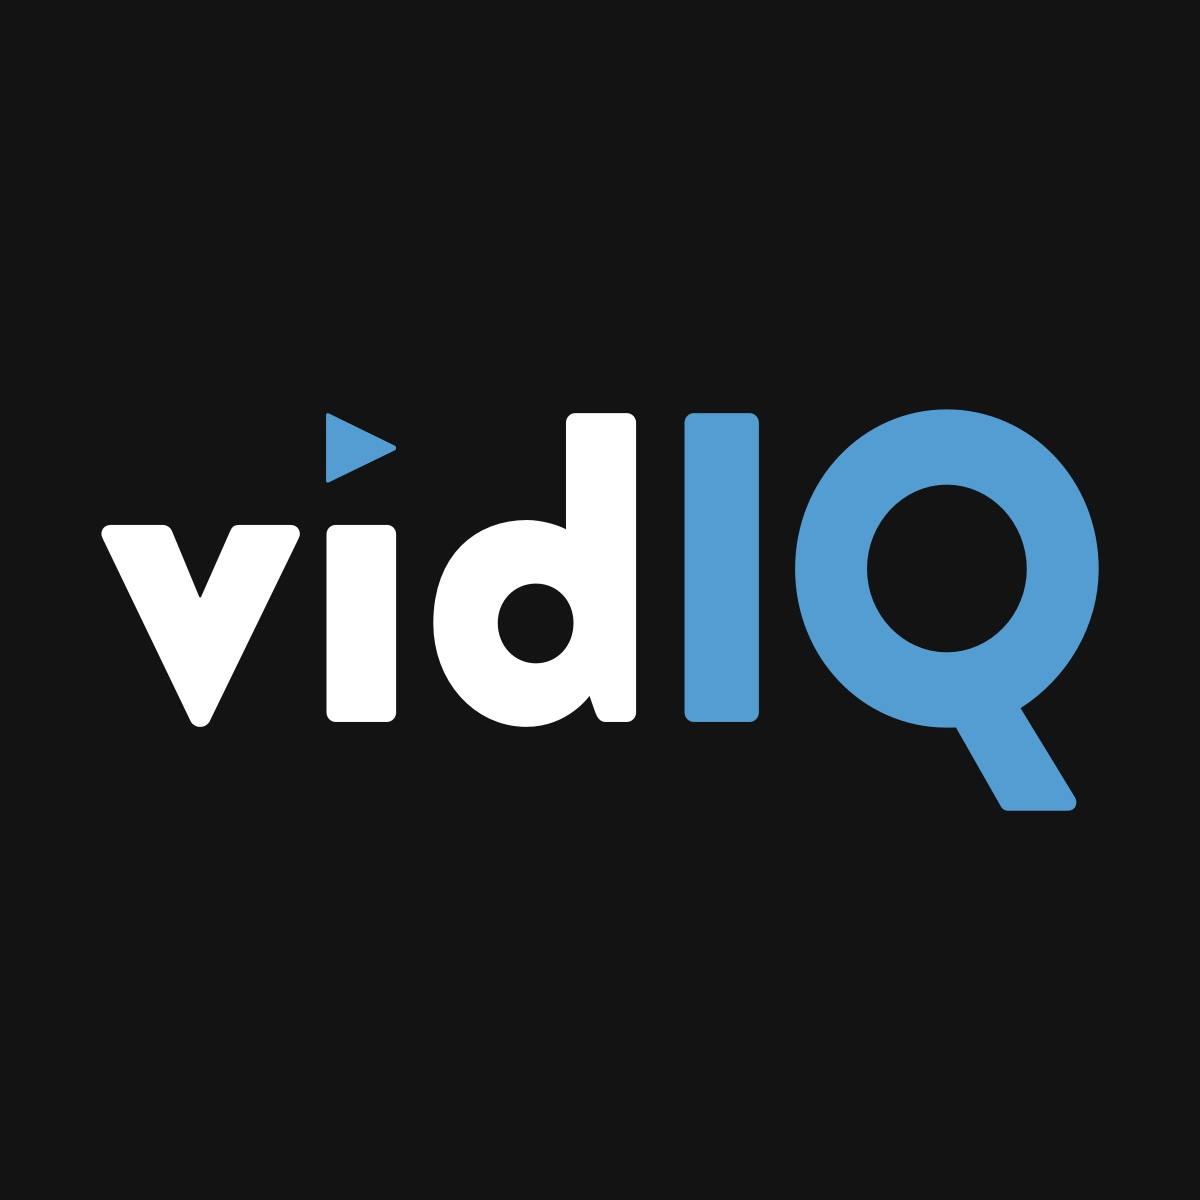 vidIQ - How To Get More Views On YouTube